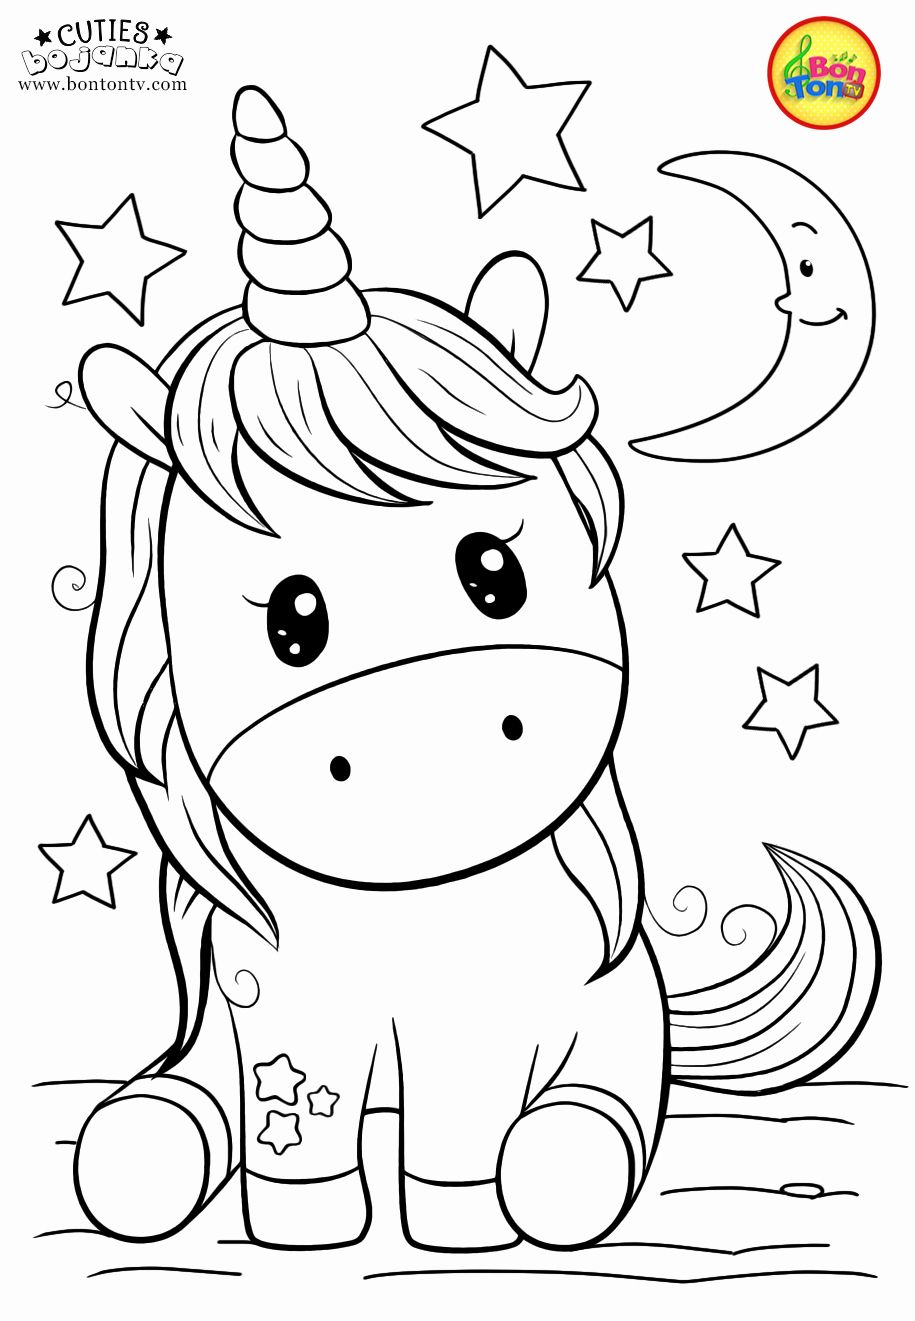 Animal Coloring Book Lion Unique Cuties Coloring Pages For Kids Free Preschool Printables In 2020 Unicorn Coloring Pages Animal Coloring Pages Lion Coloring Pages